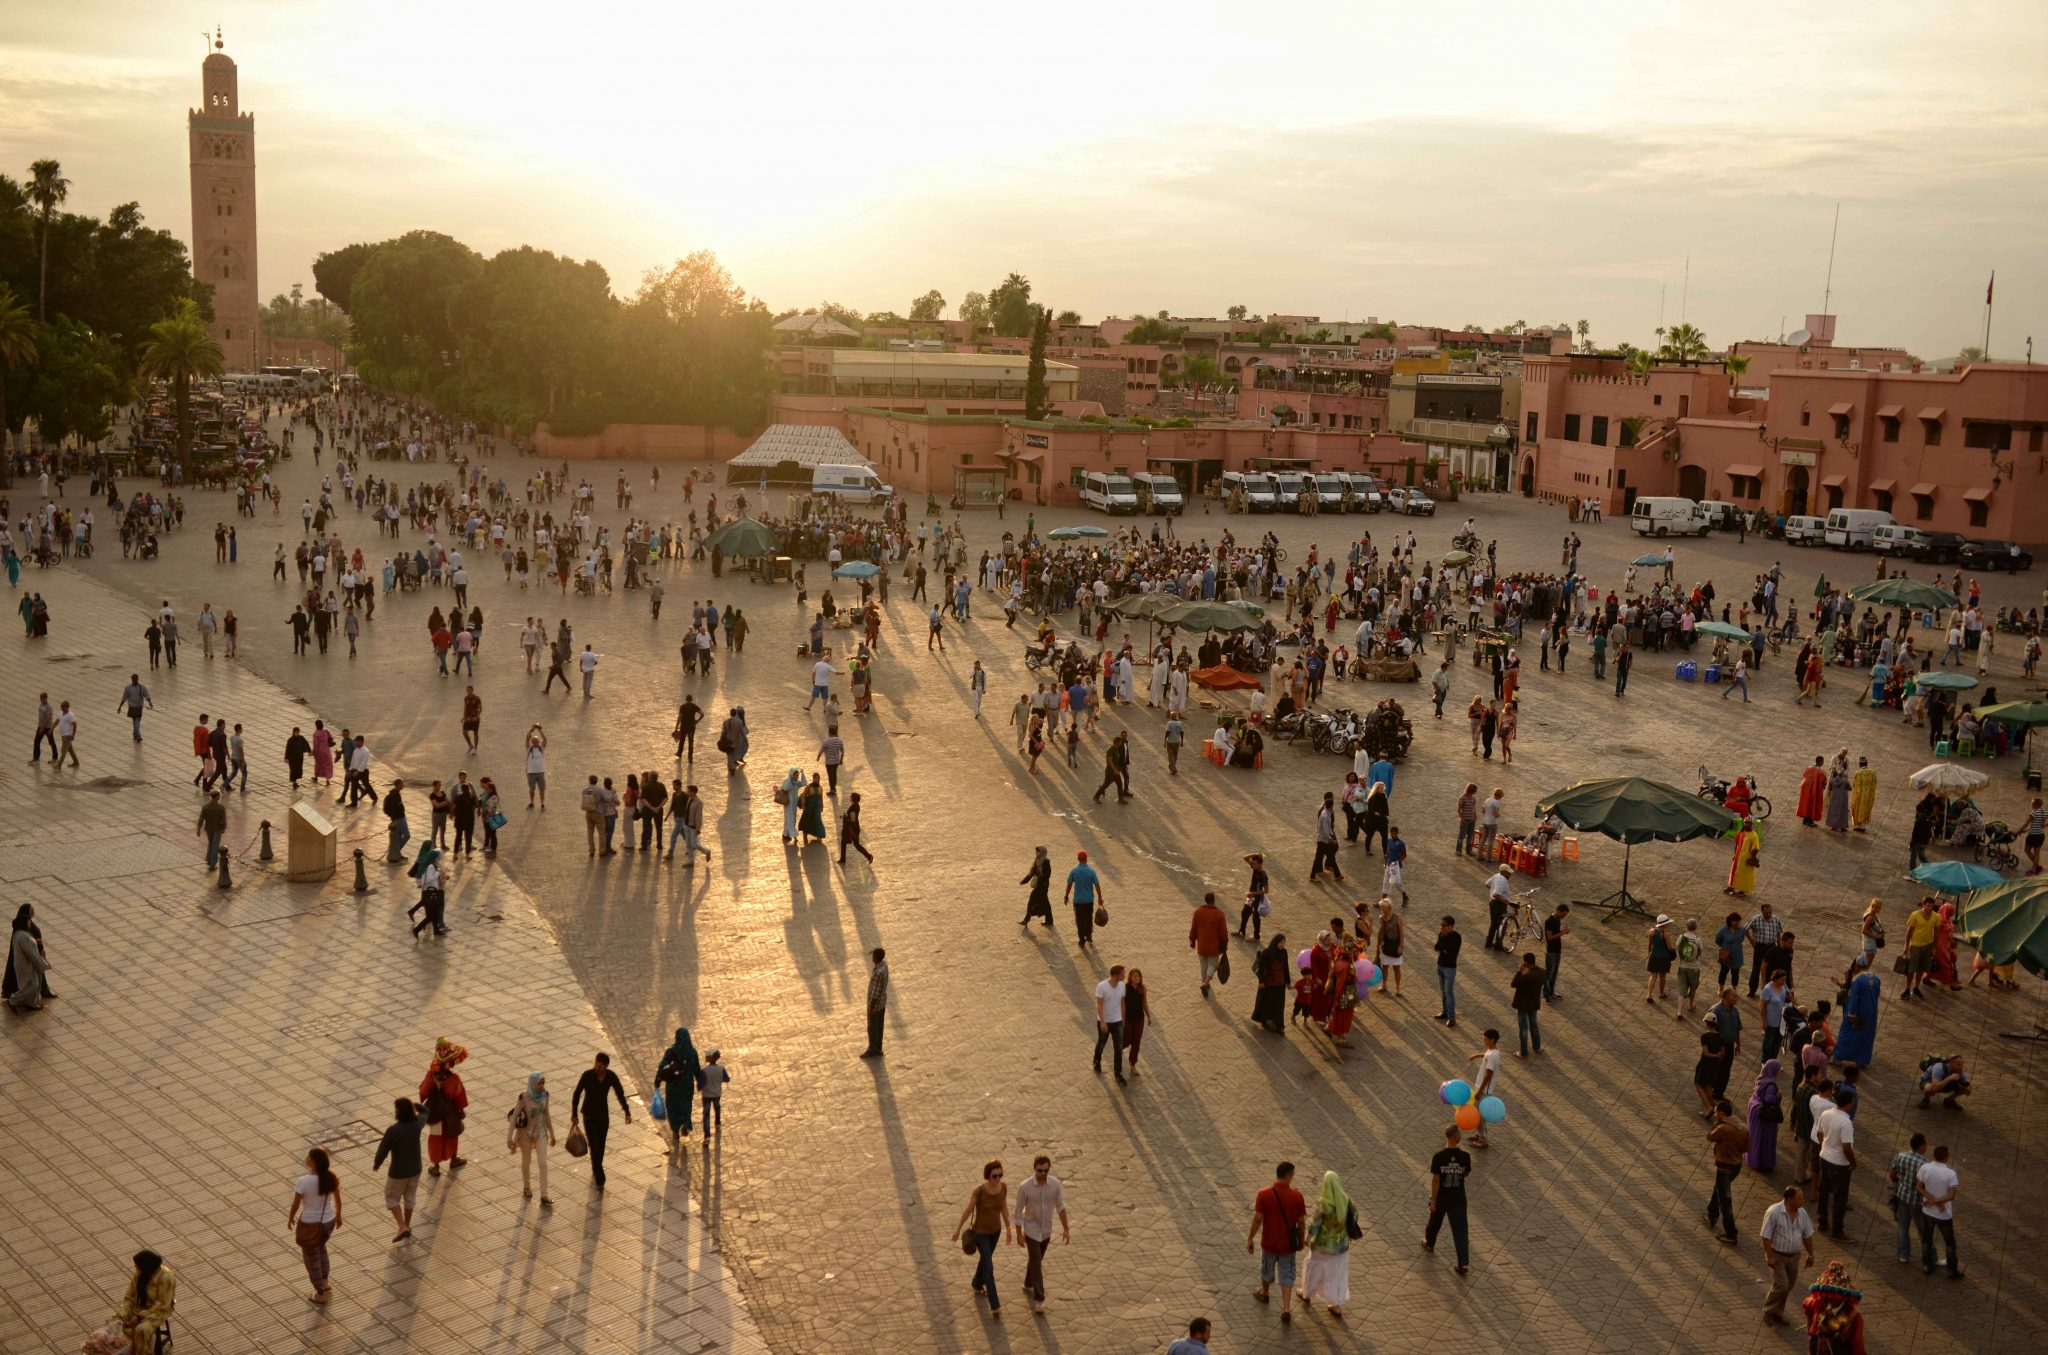 Jemaa el Fna at sunset